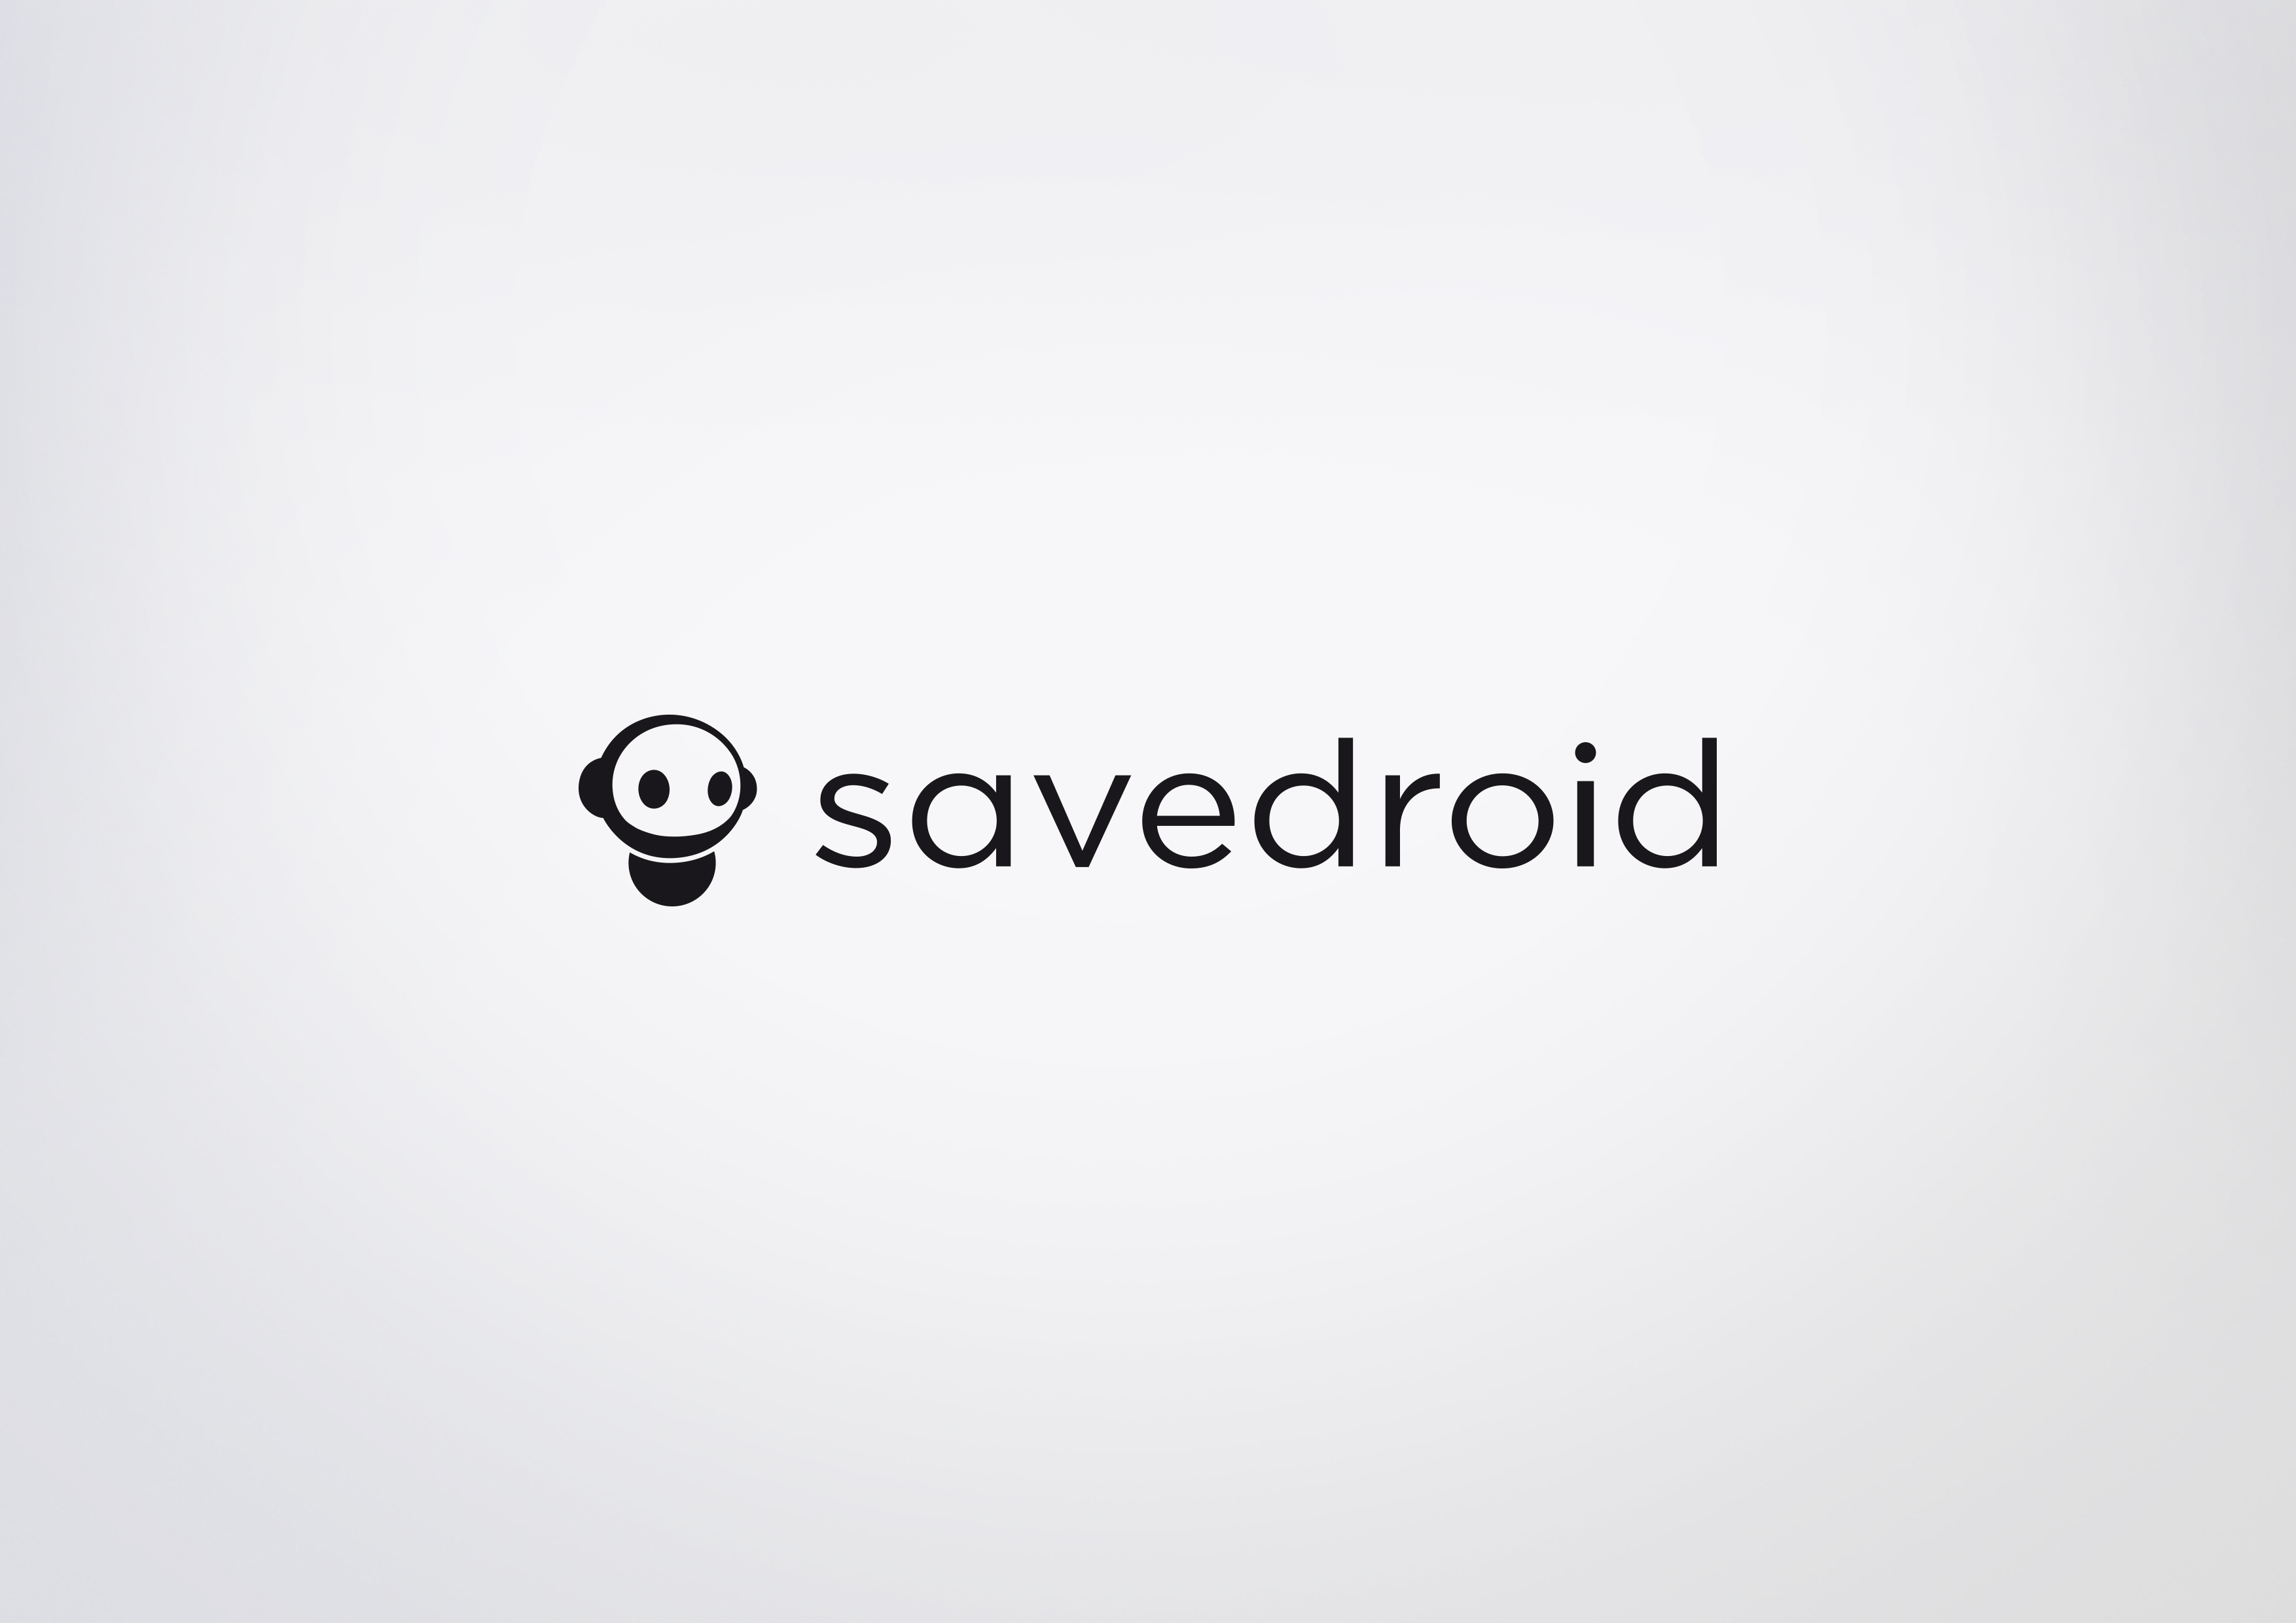 Quandel-Staudt-Design-Savedroid-06